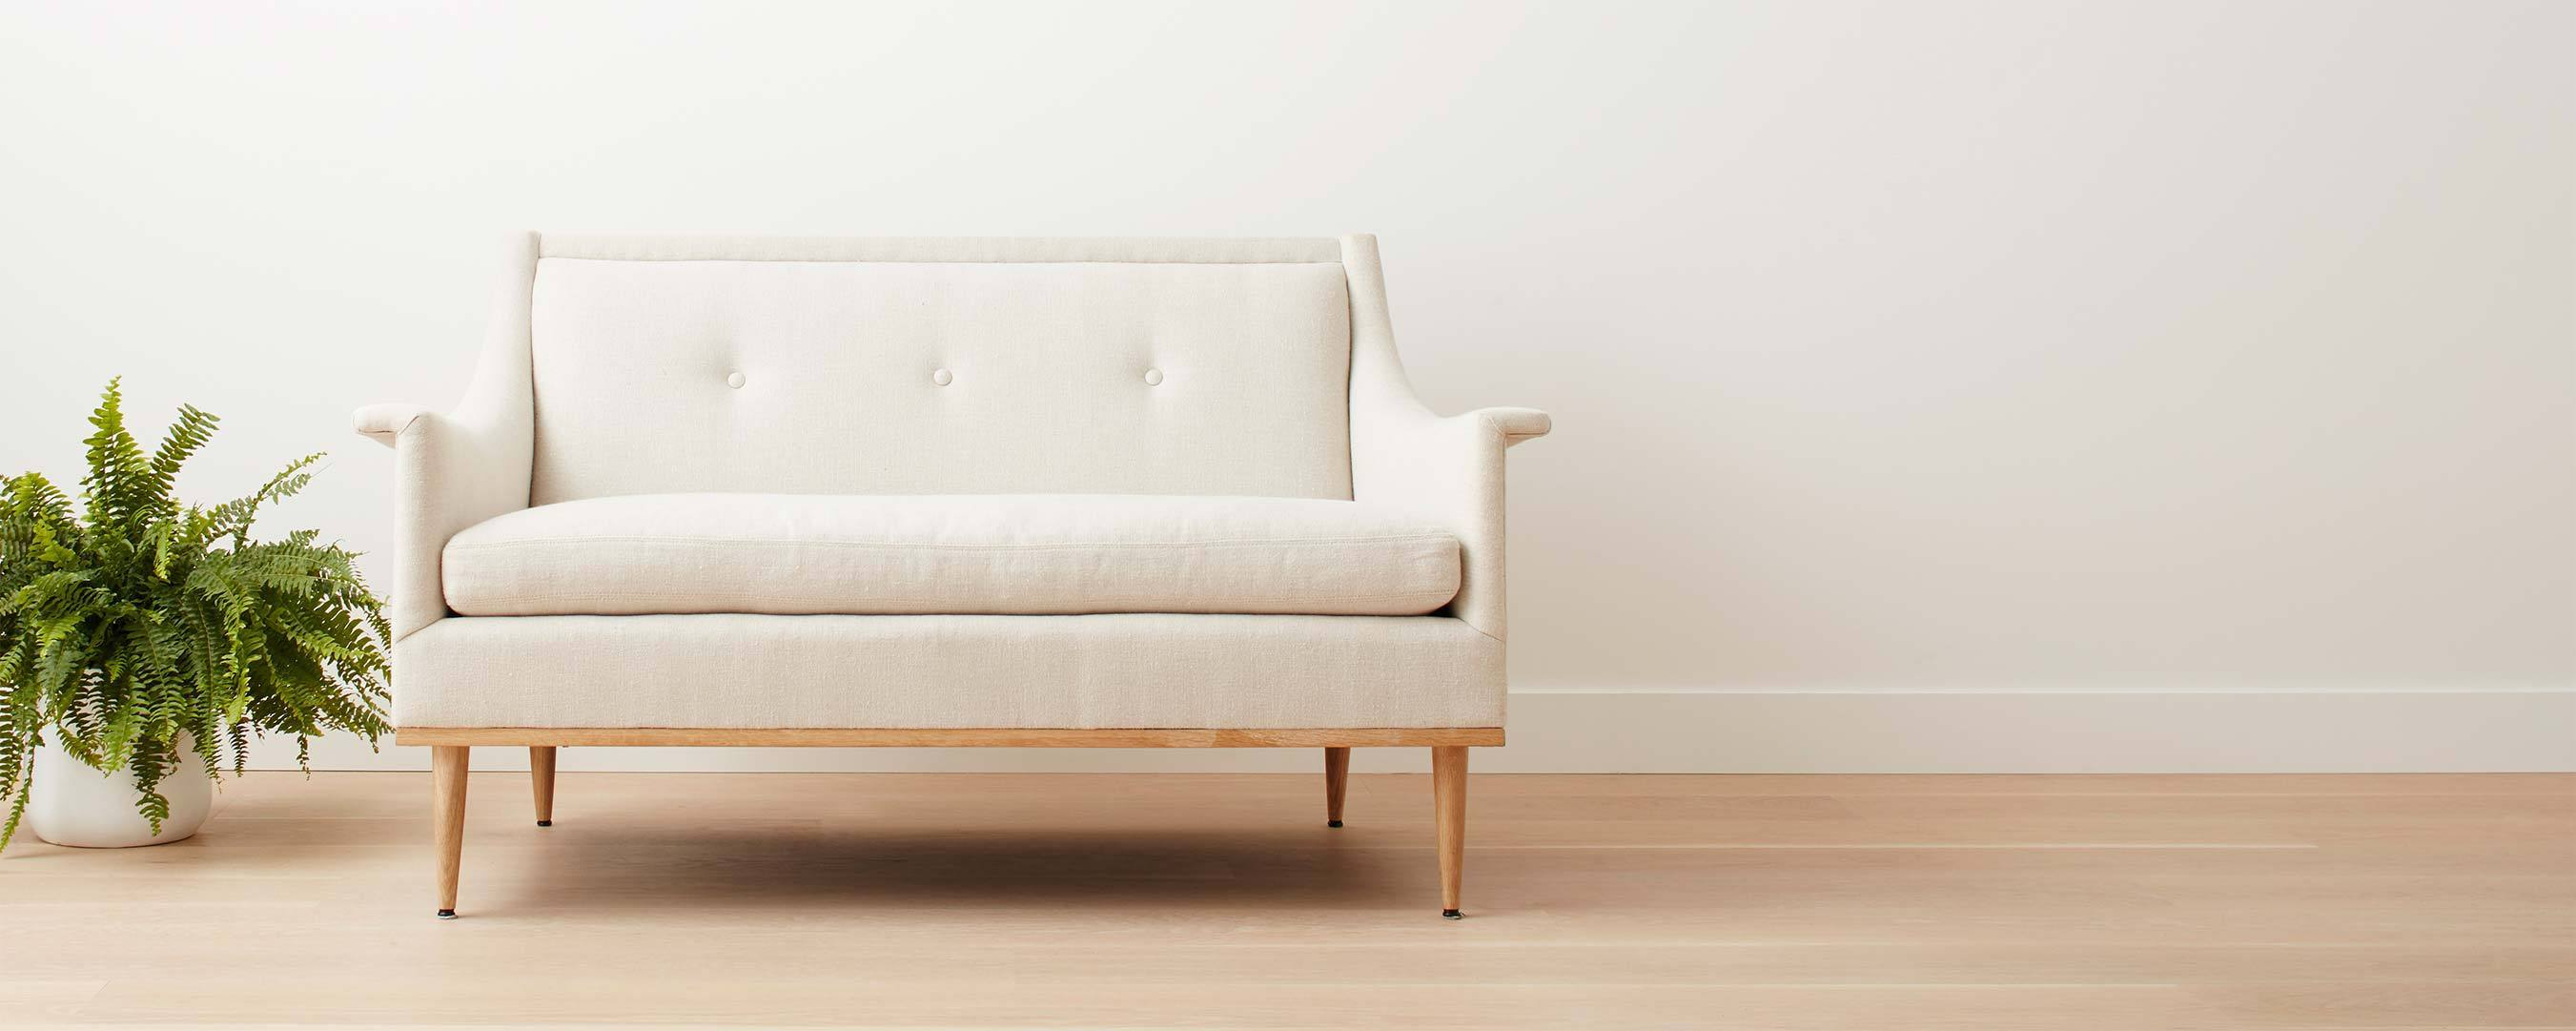 the lily pond loveseat